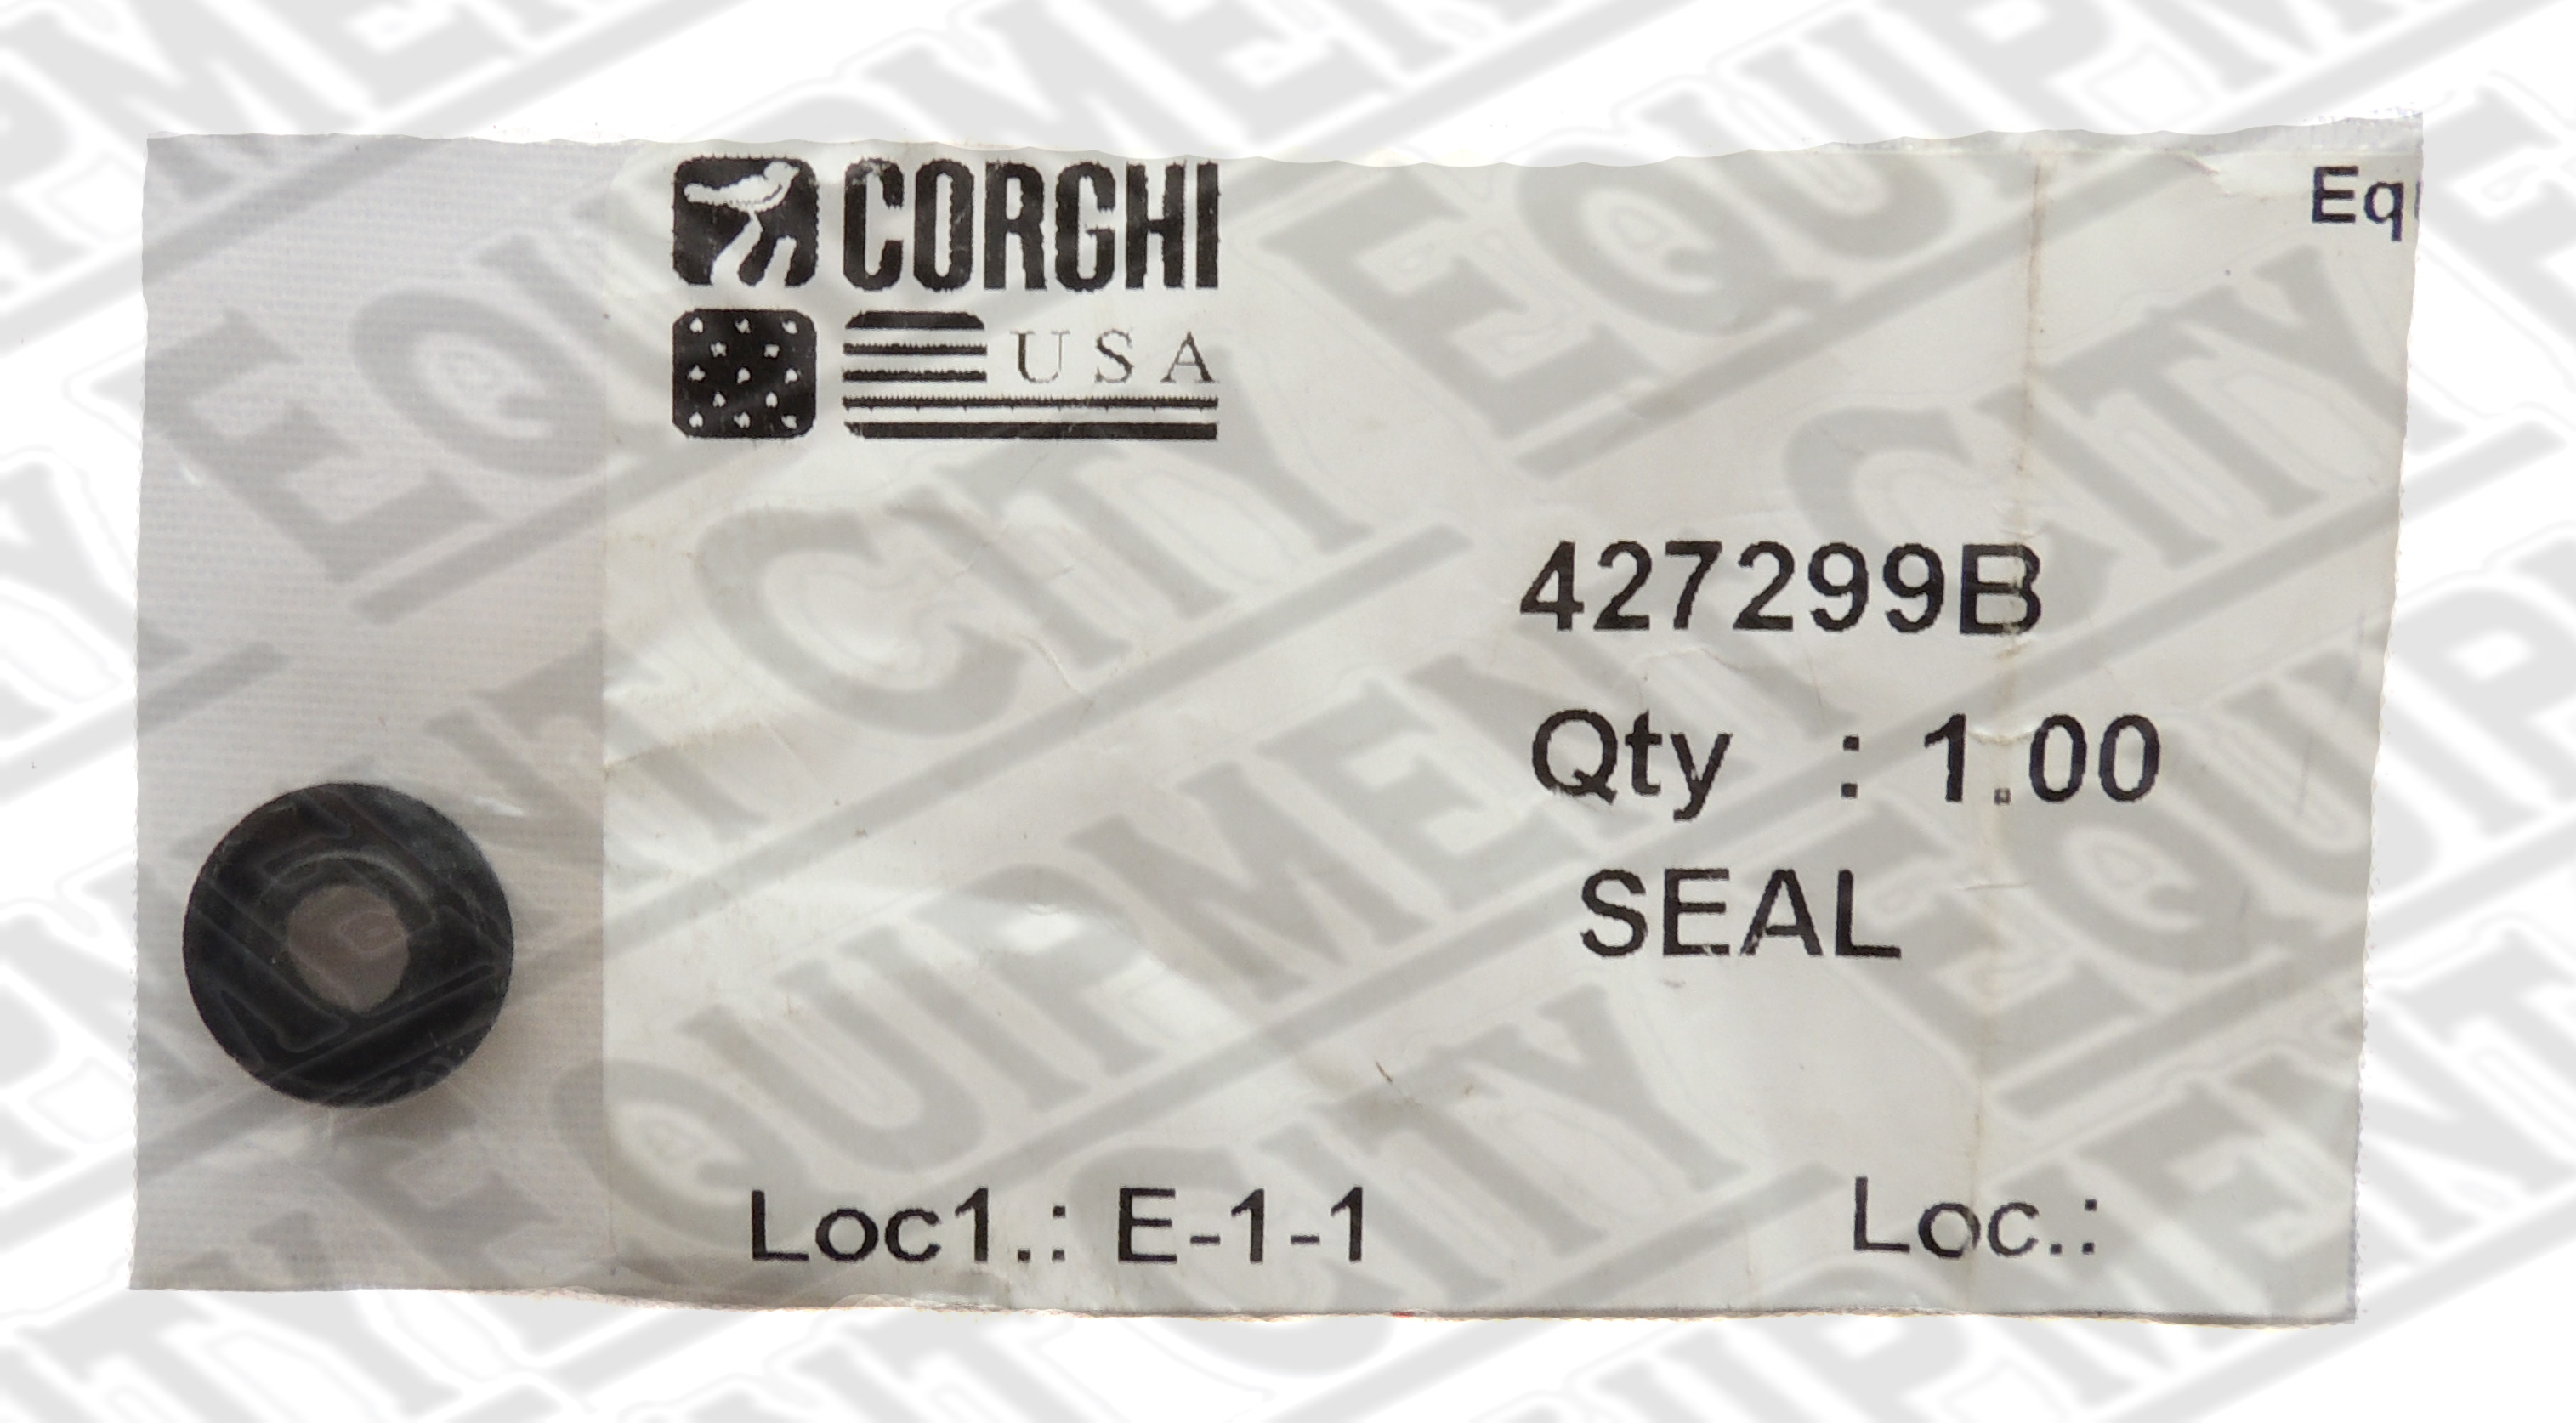 427299B Corghi SEAL Replaces 900427299